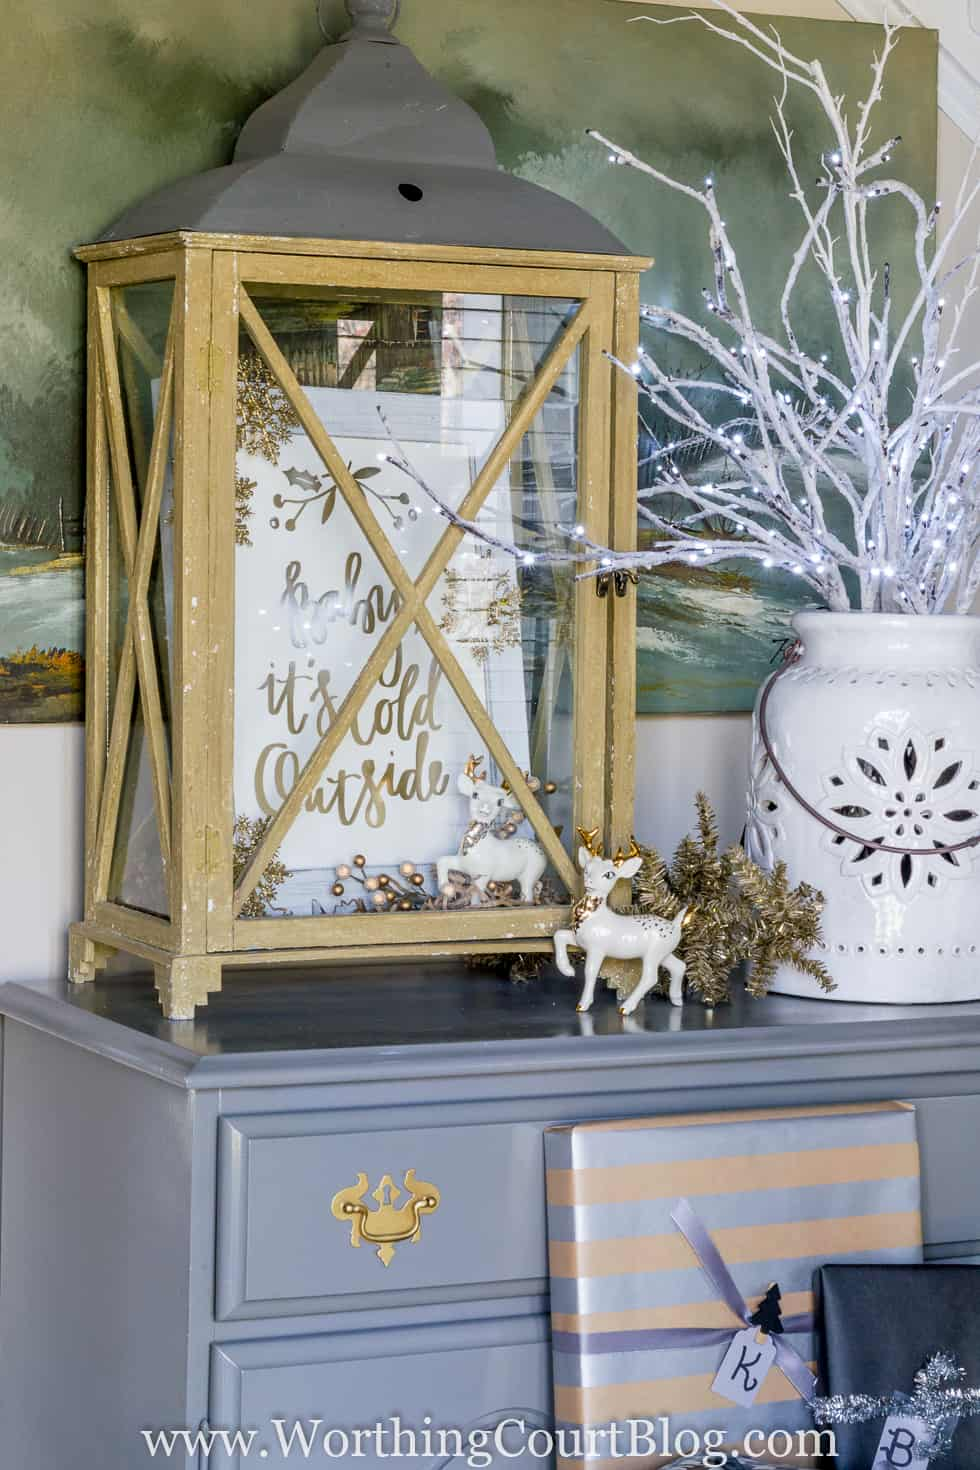 A rustic lantern with the print inside it.